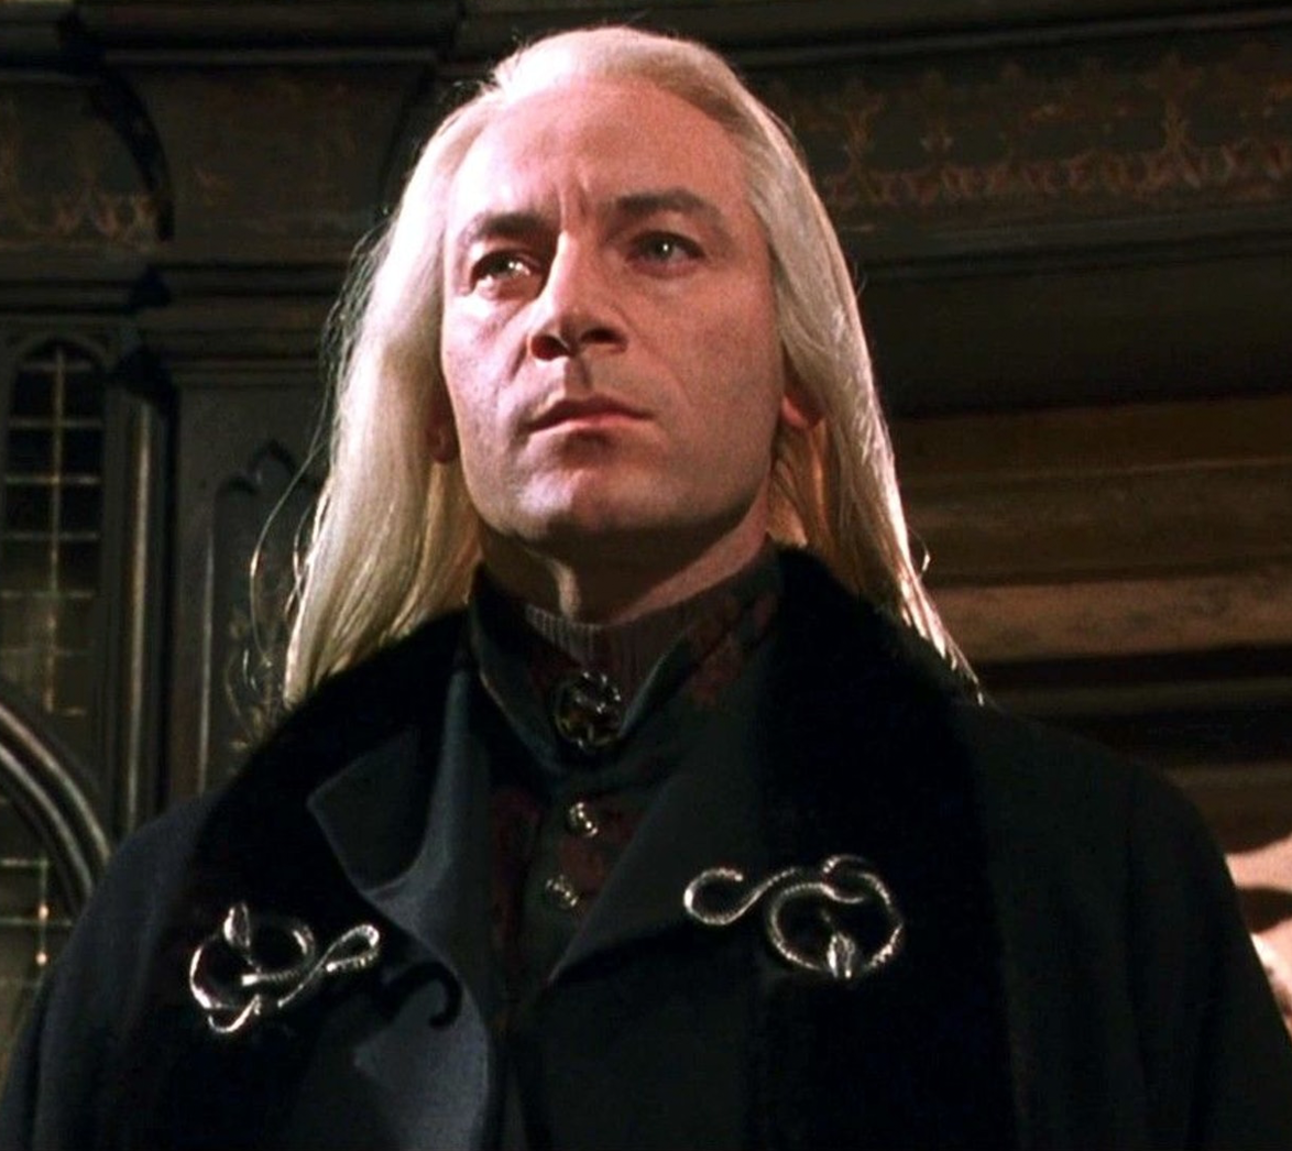 Lucius Malfoy from Harry Potter